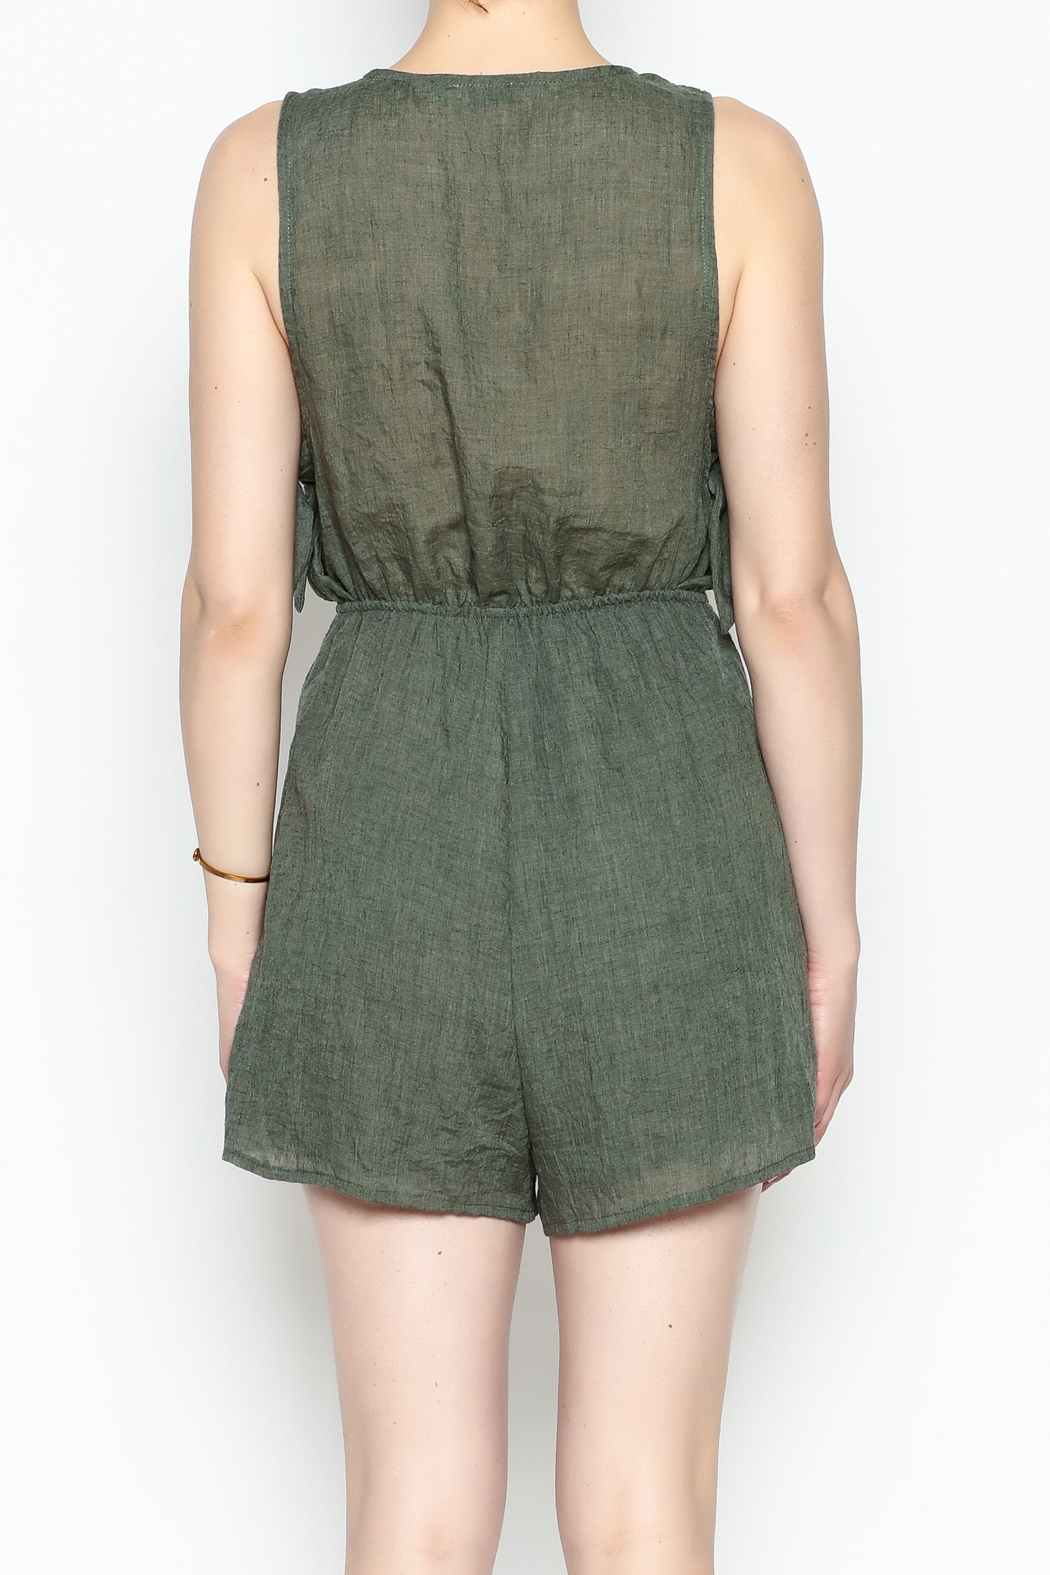 Lush Olive Green Romper - Back Cropped Image